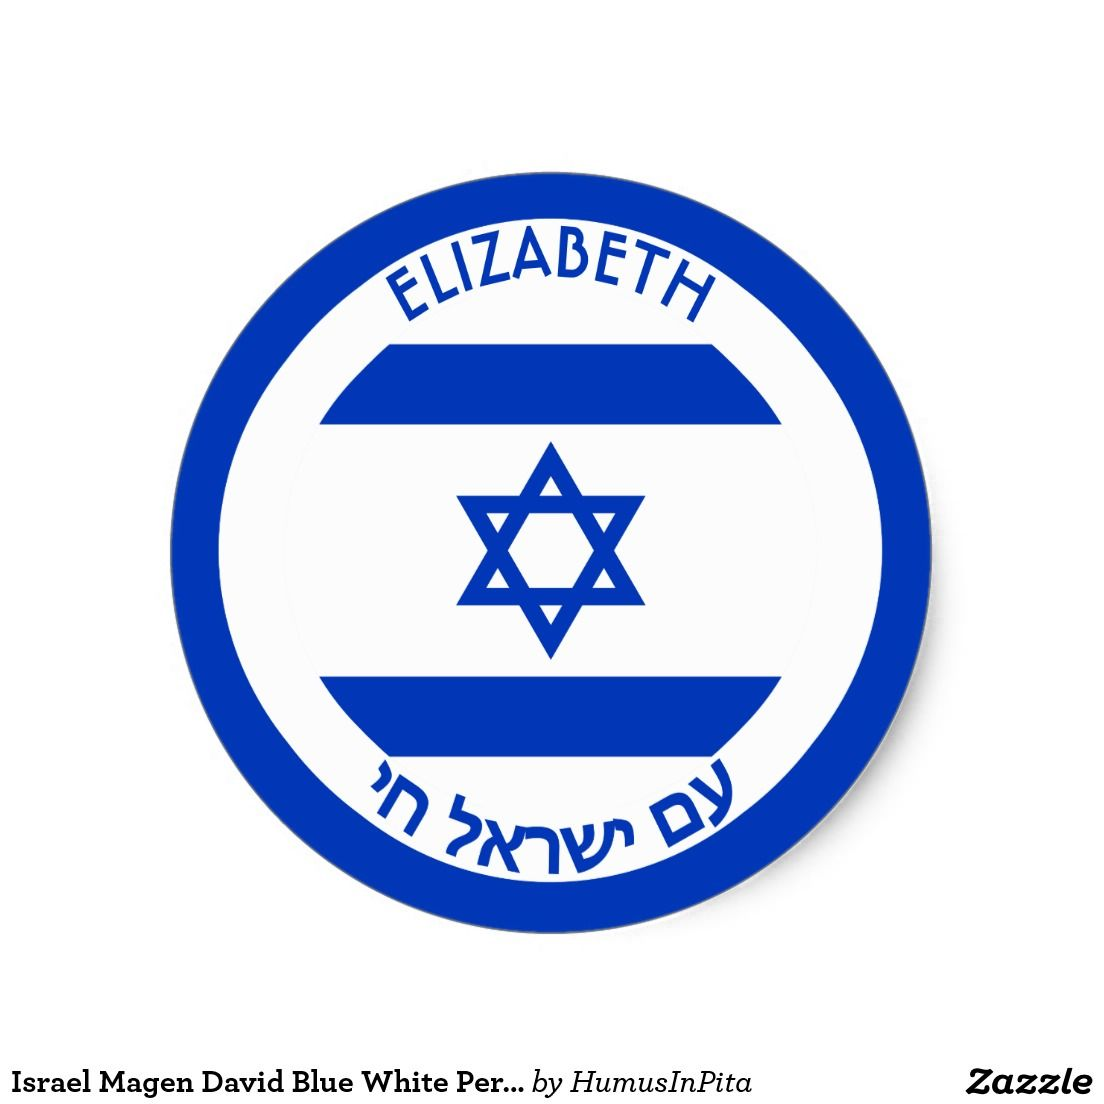 Israel Magen David Blue White Personalized Flag Classic